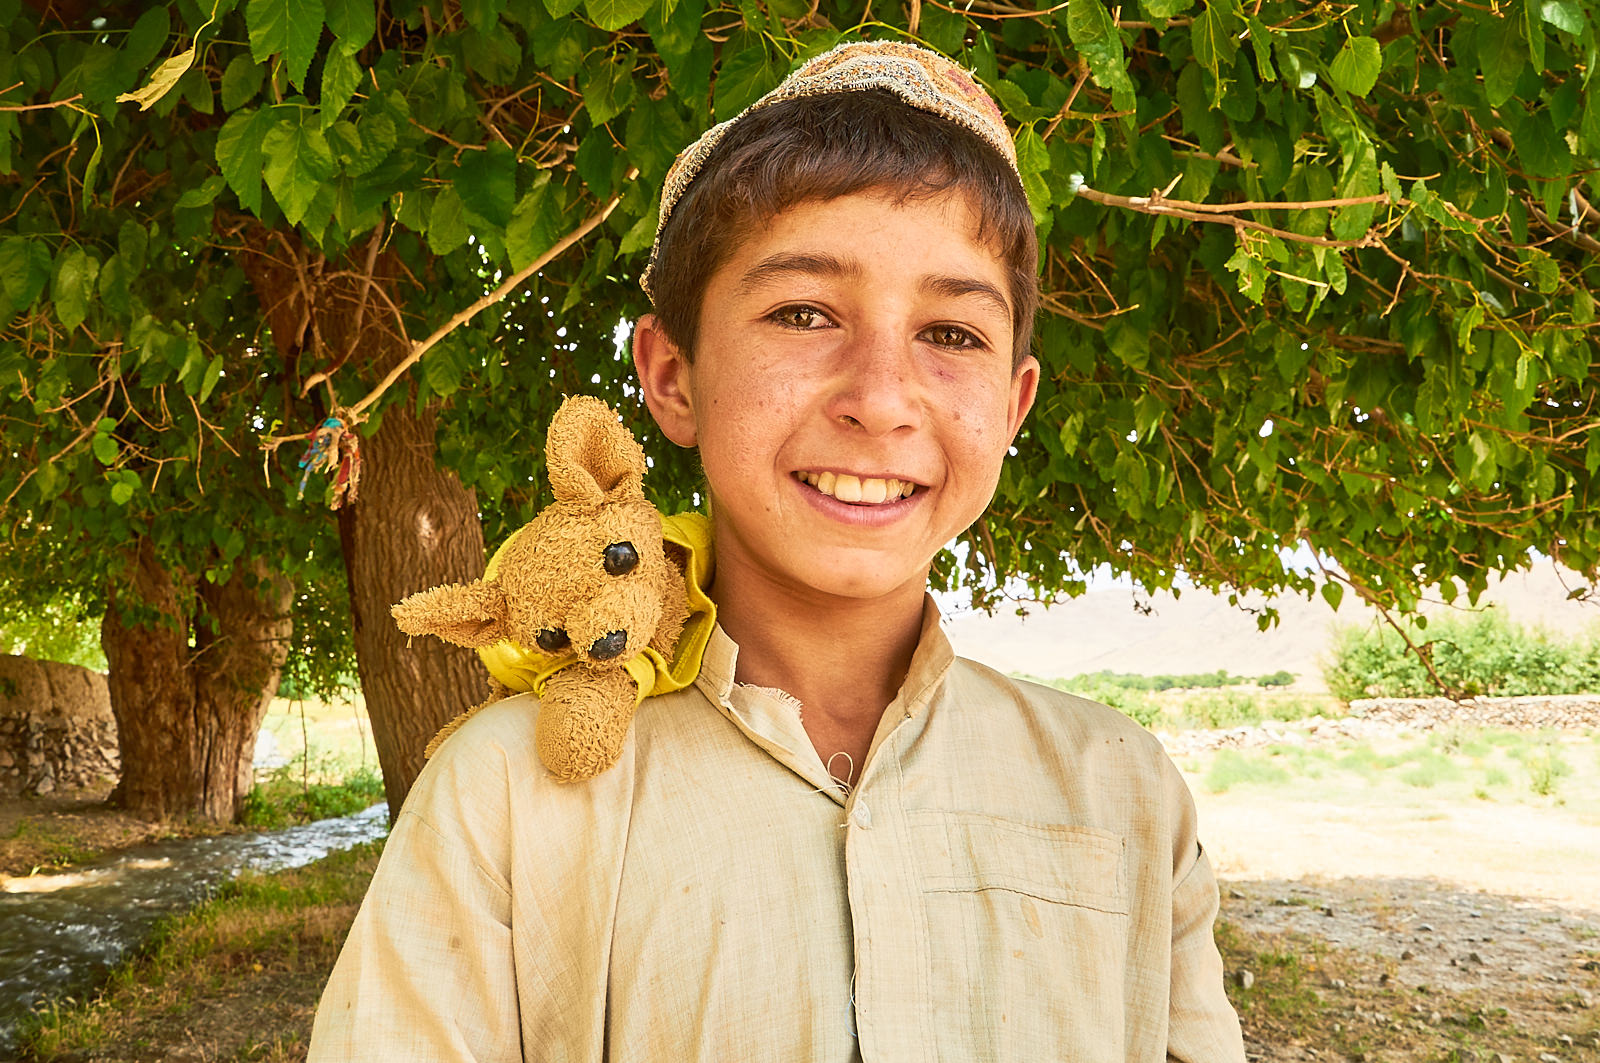 Afghan Kid with Stuffed animal for Adoption Family Photography